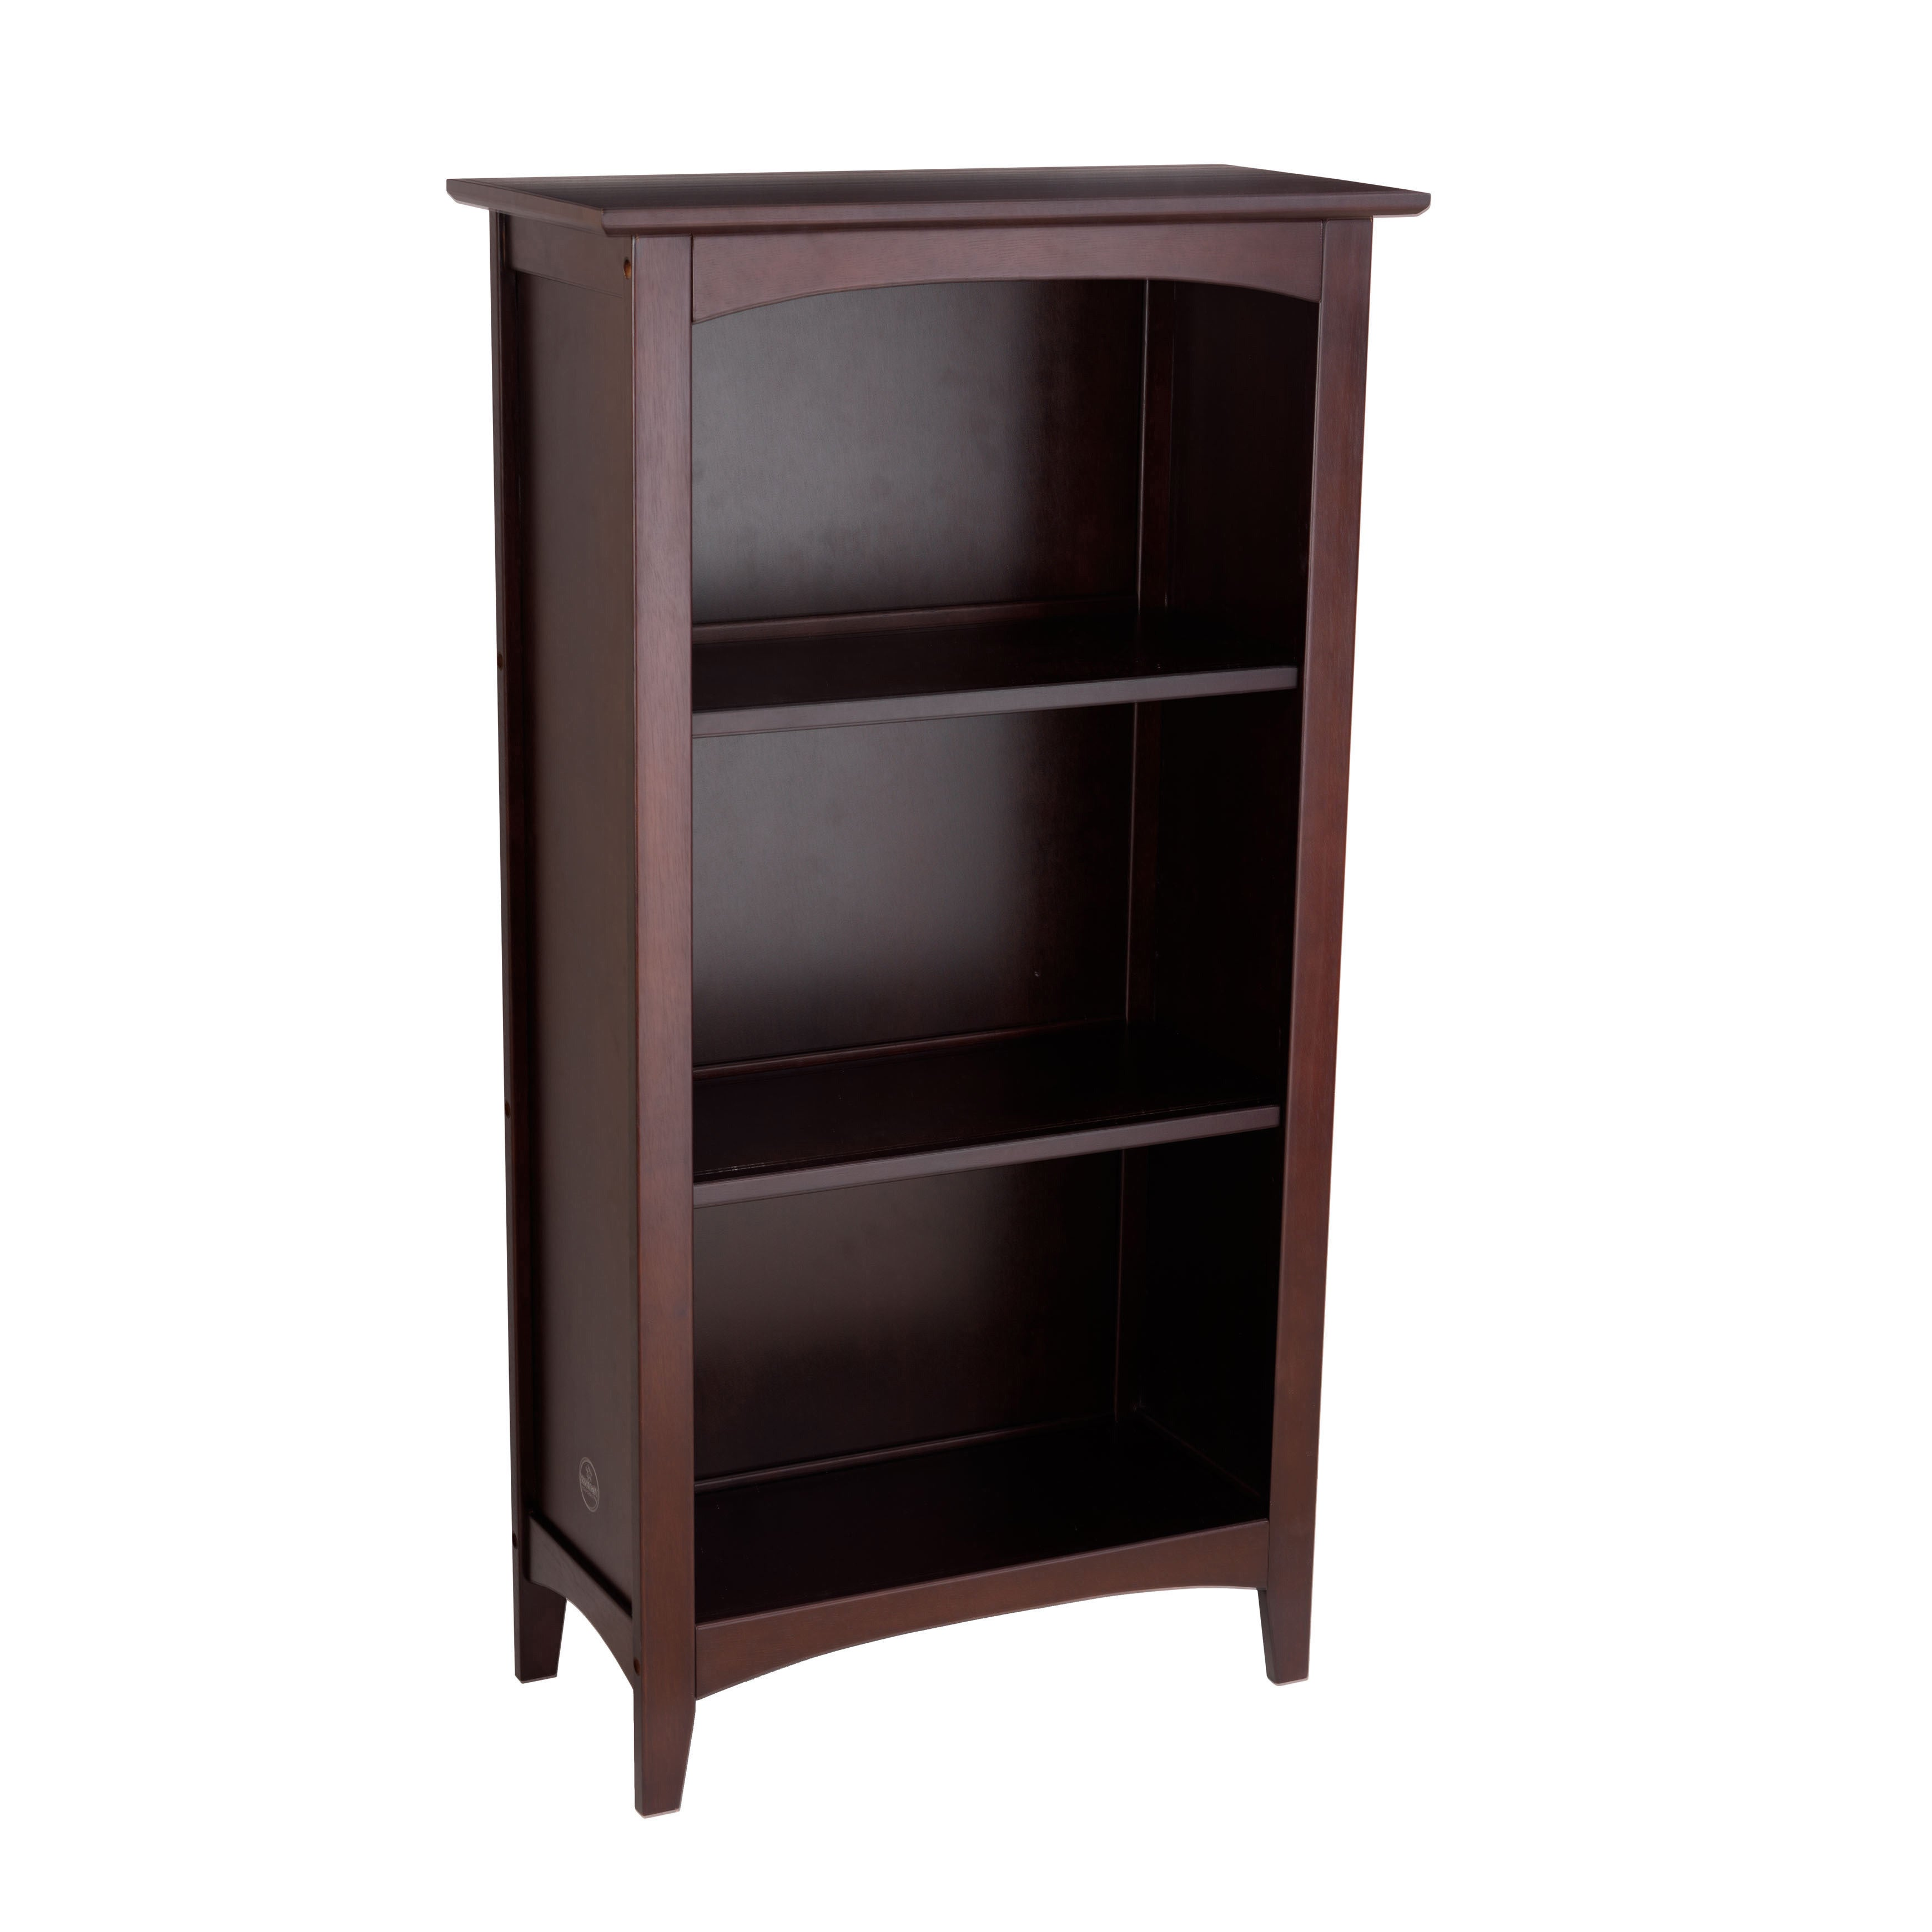 mahogany bookshelf for narrow tall glass bookcases bookcase spaces size doors small black with